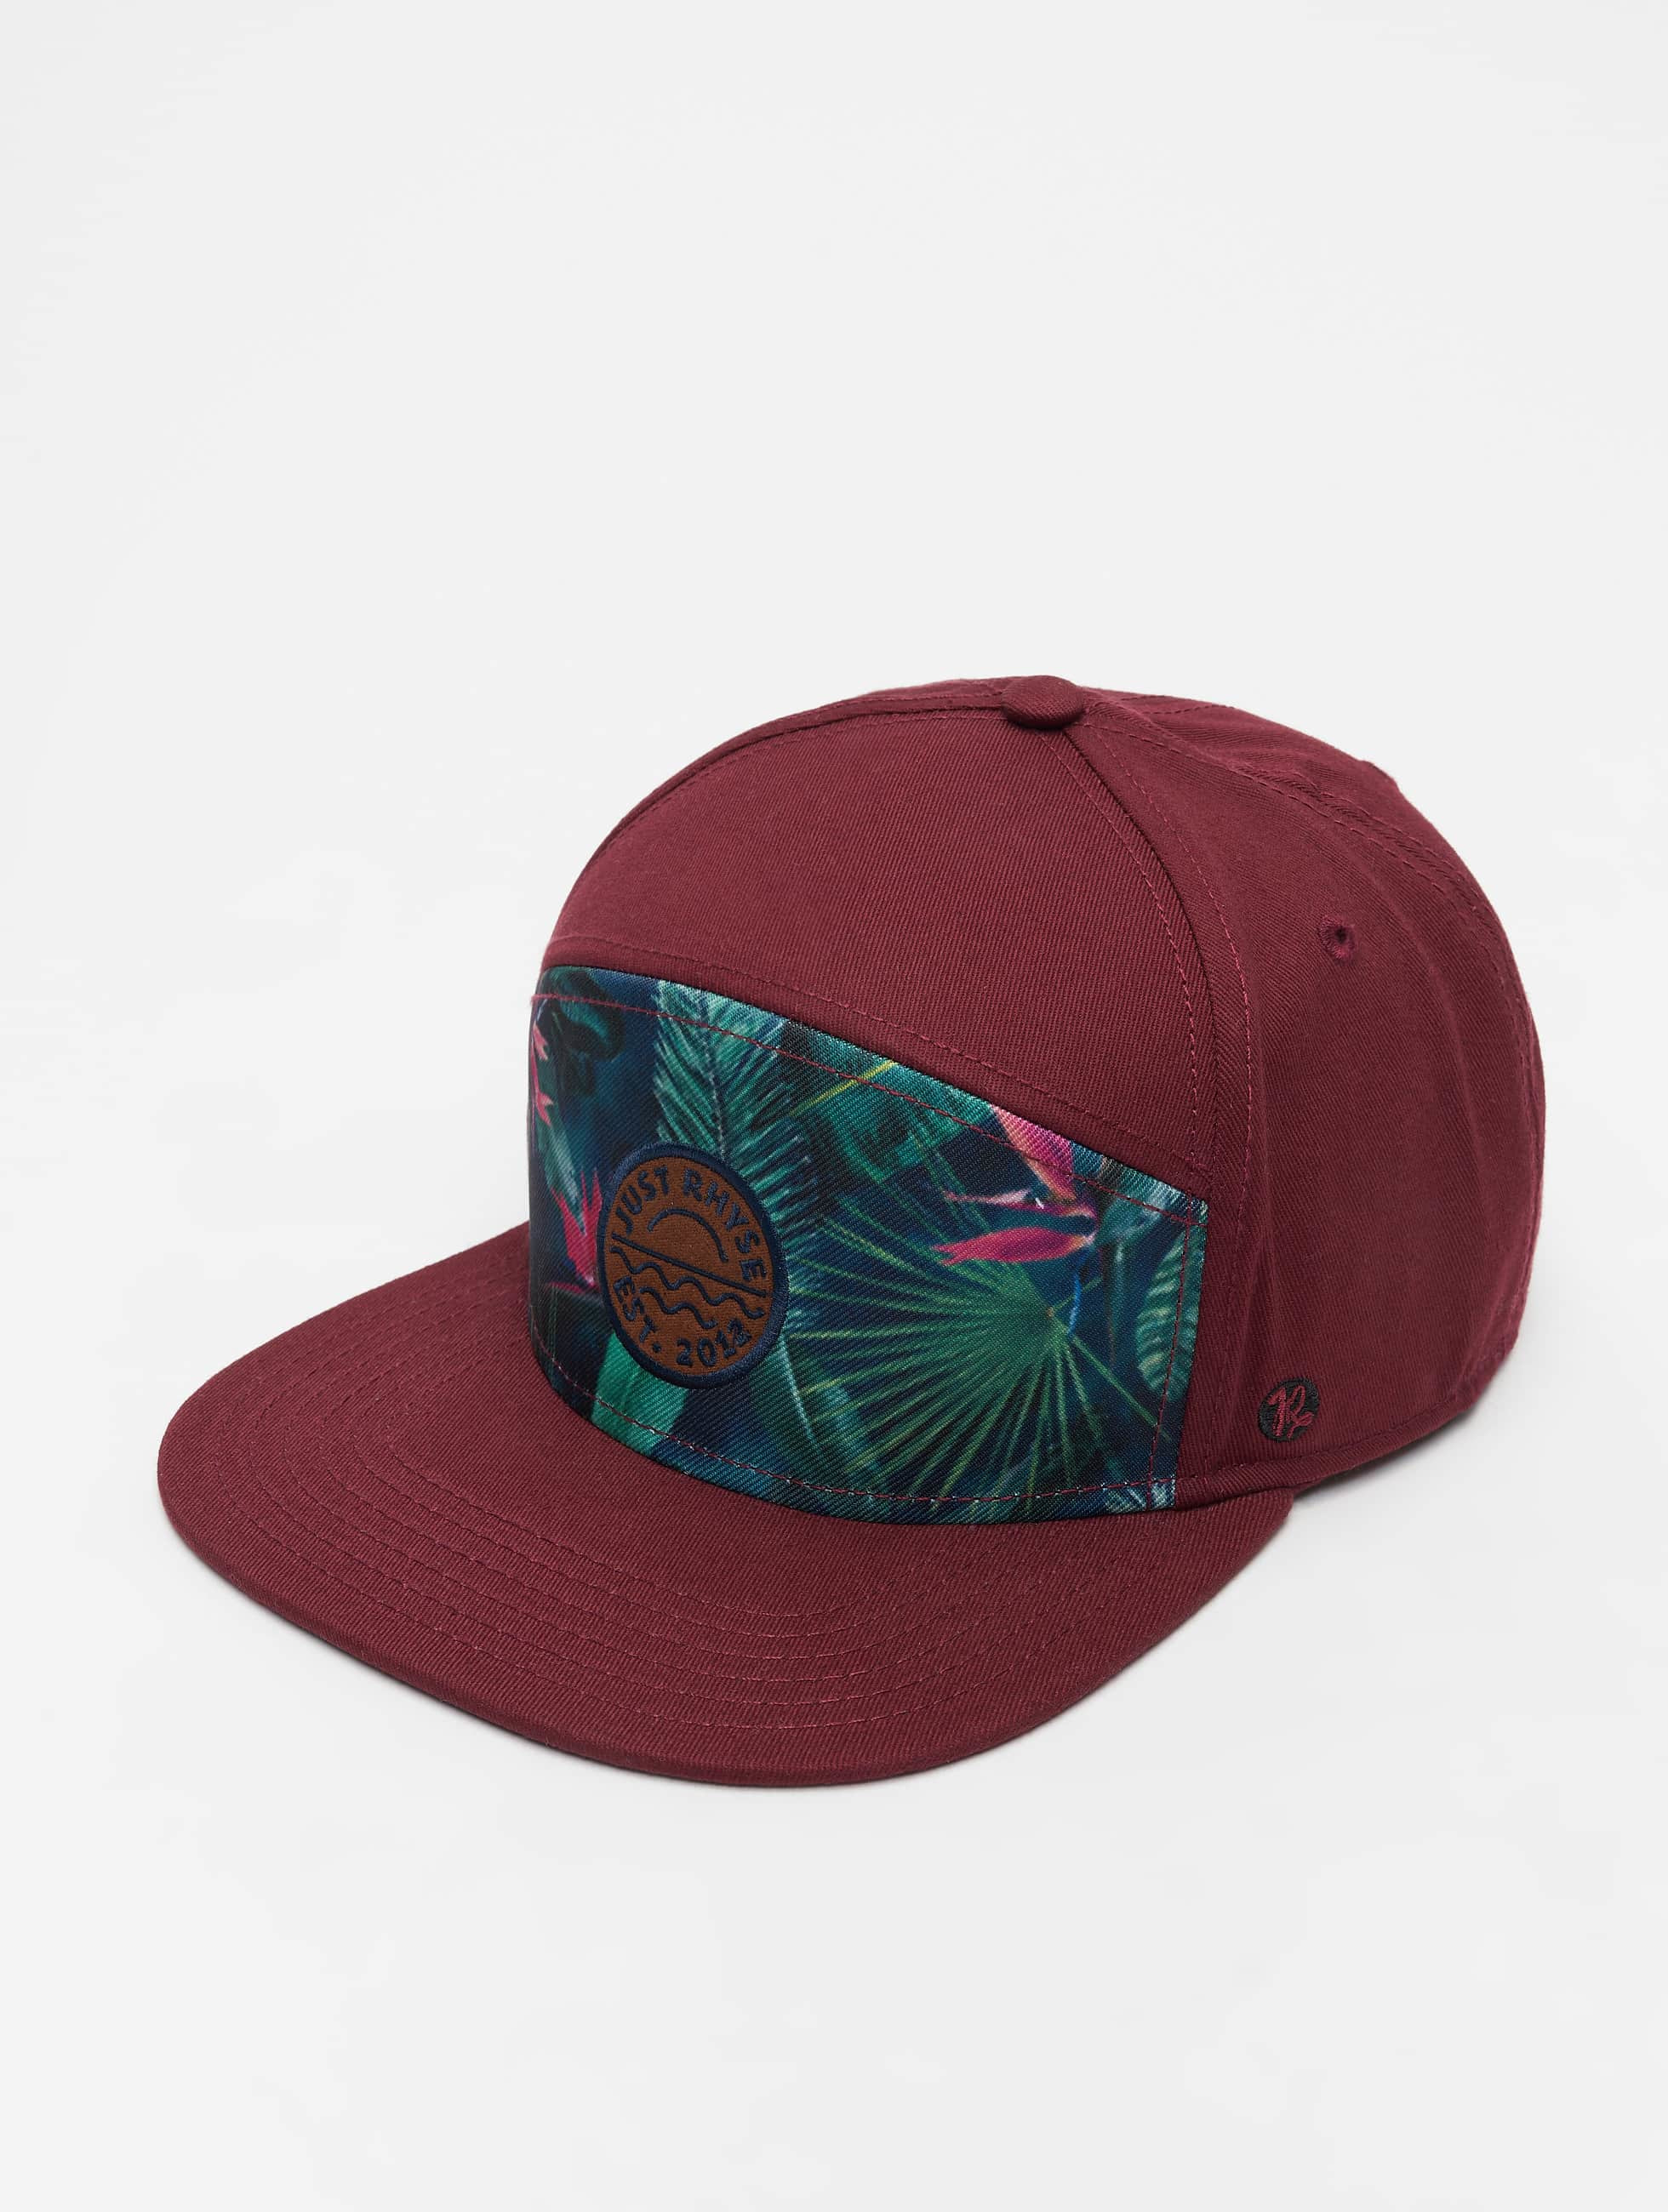 Just Rhyse / 5 Panel Caps Delray Beach in red Adjustable